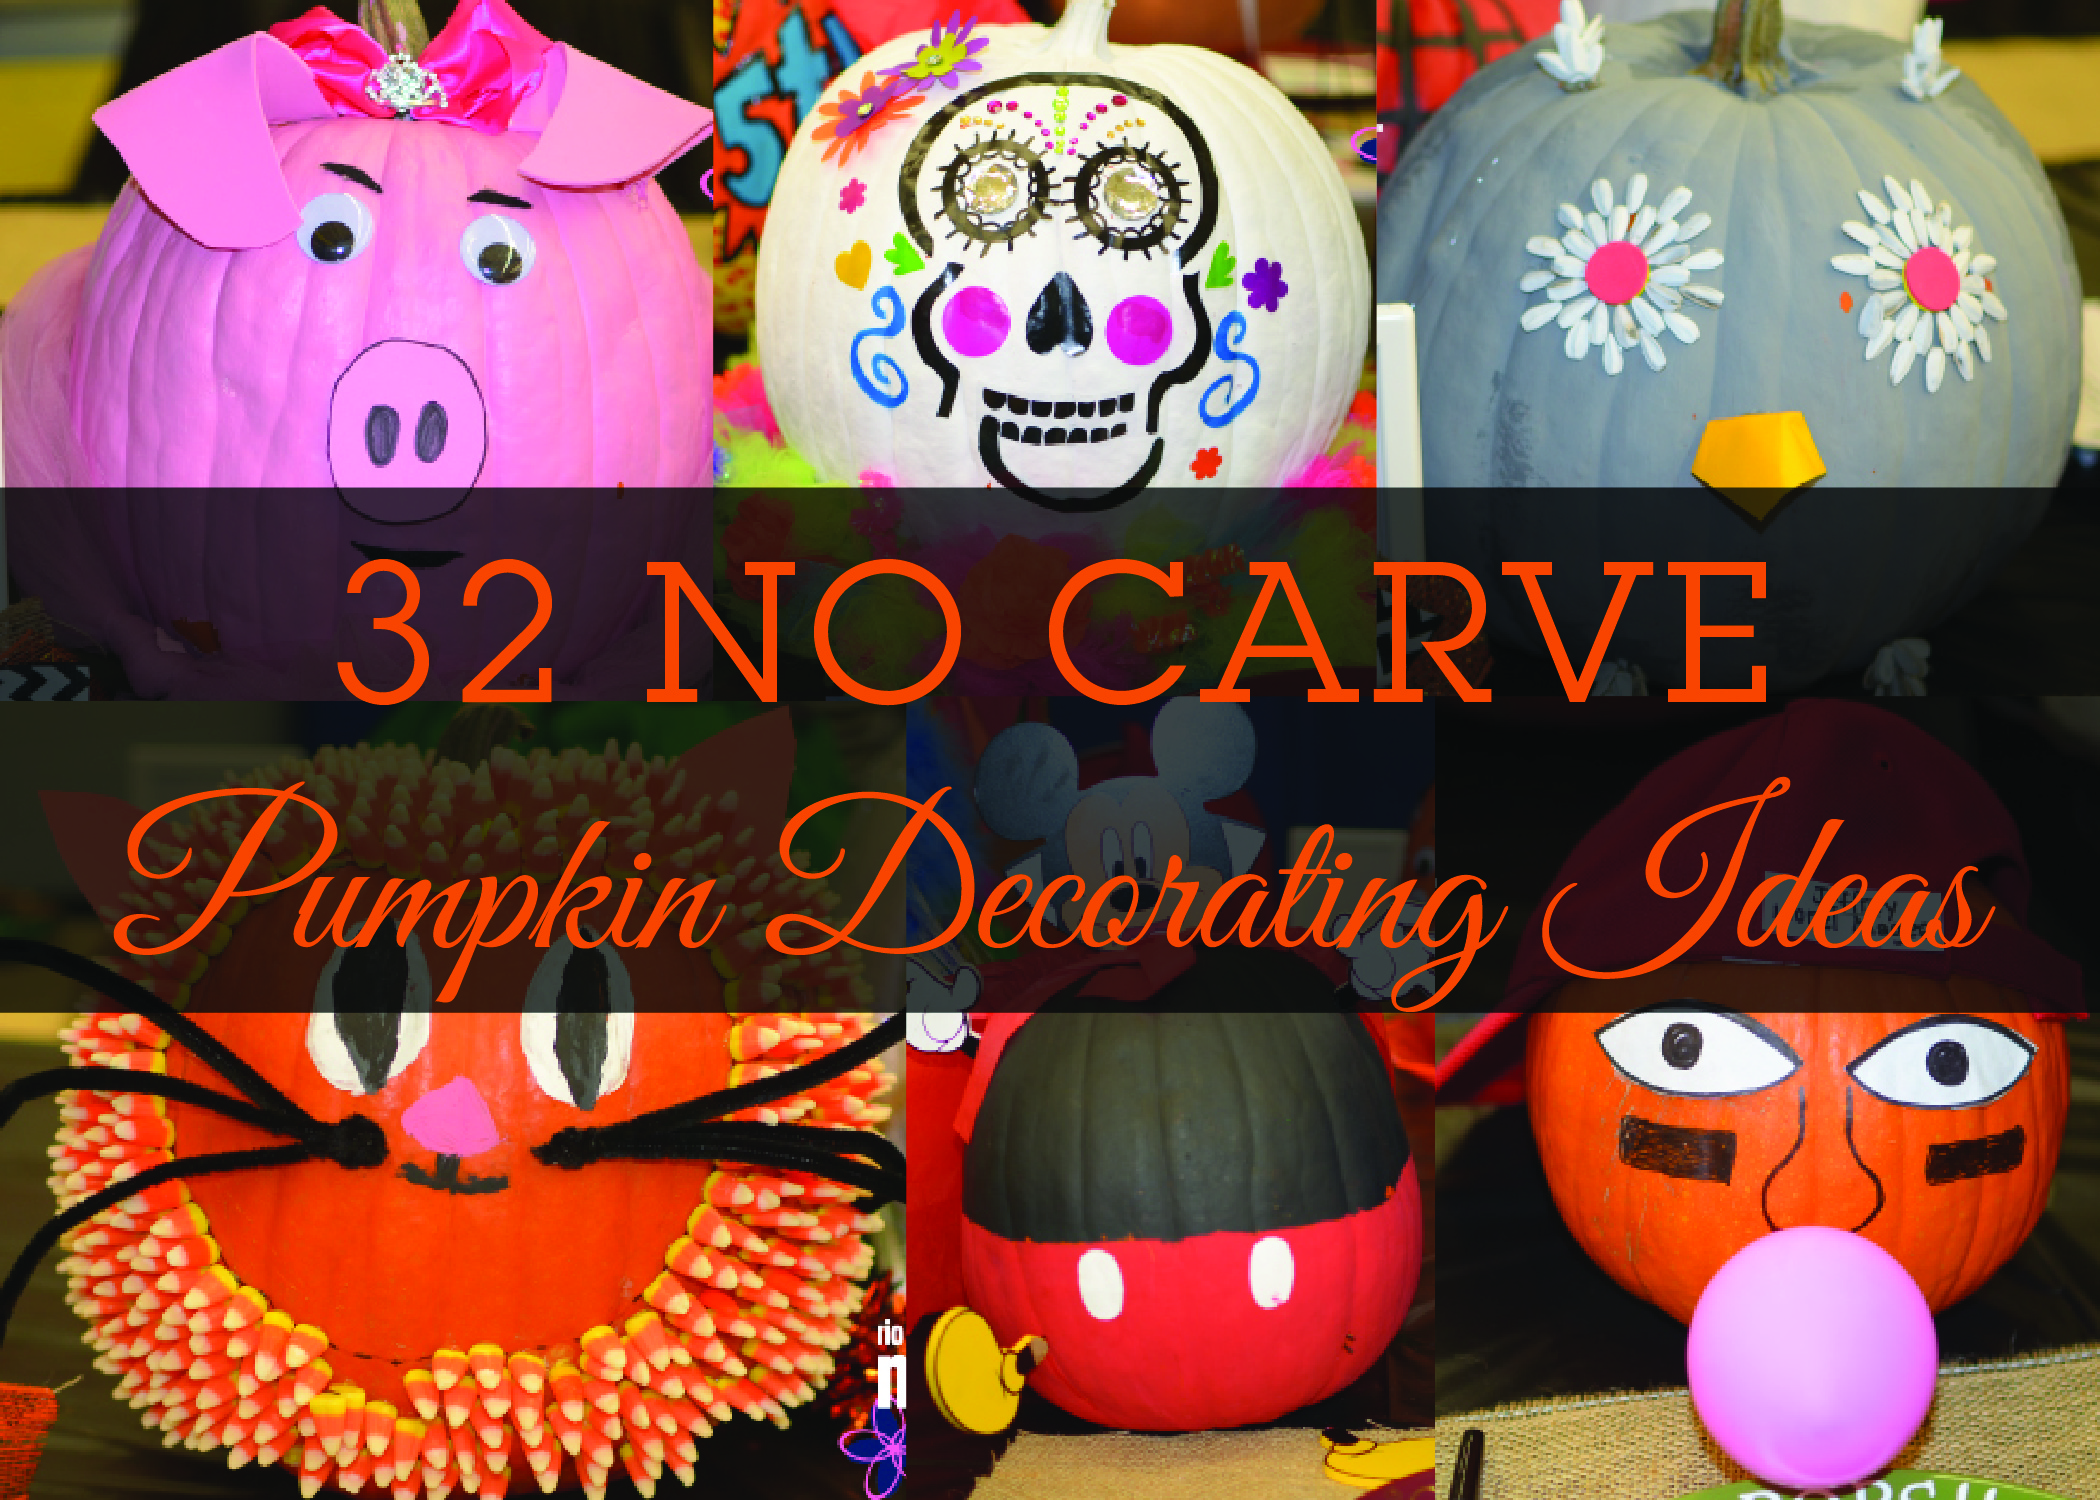 Pumpkin Decorating Ideas | Decorating Ideas